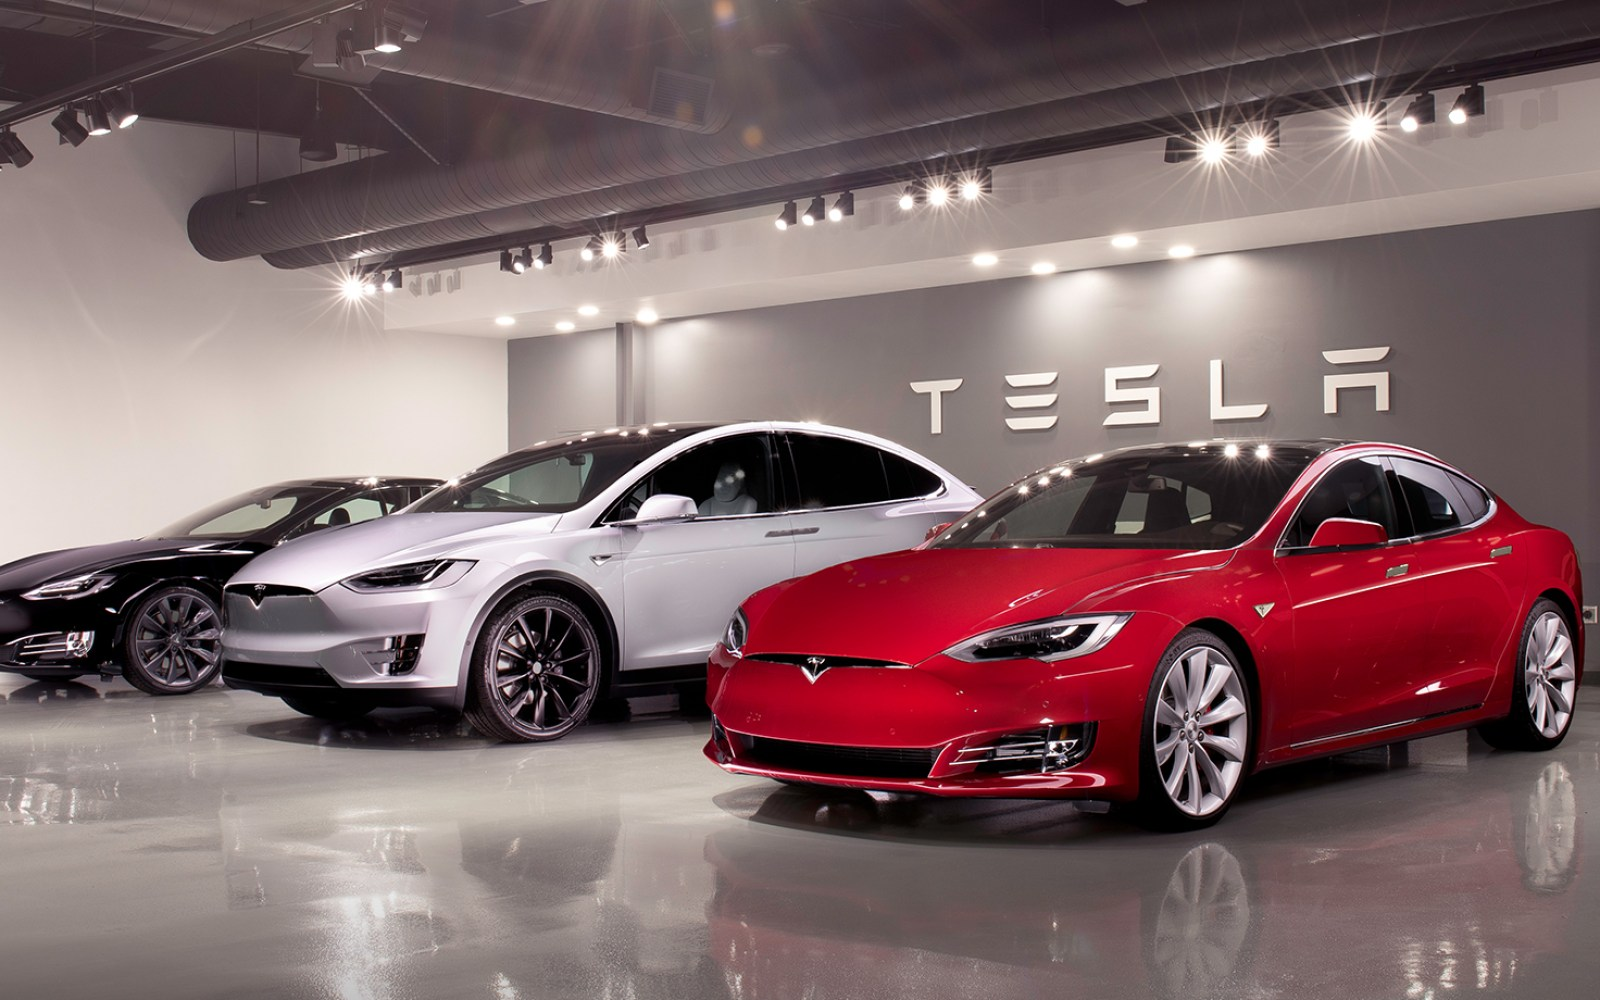 Tesla's used vehicles are selling faster and closer to list price than most cars, report says